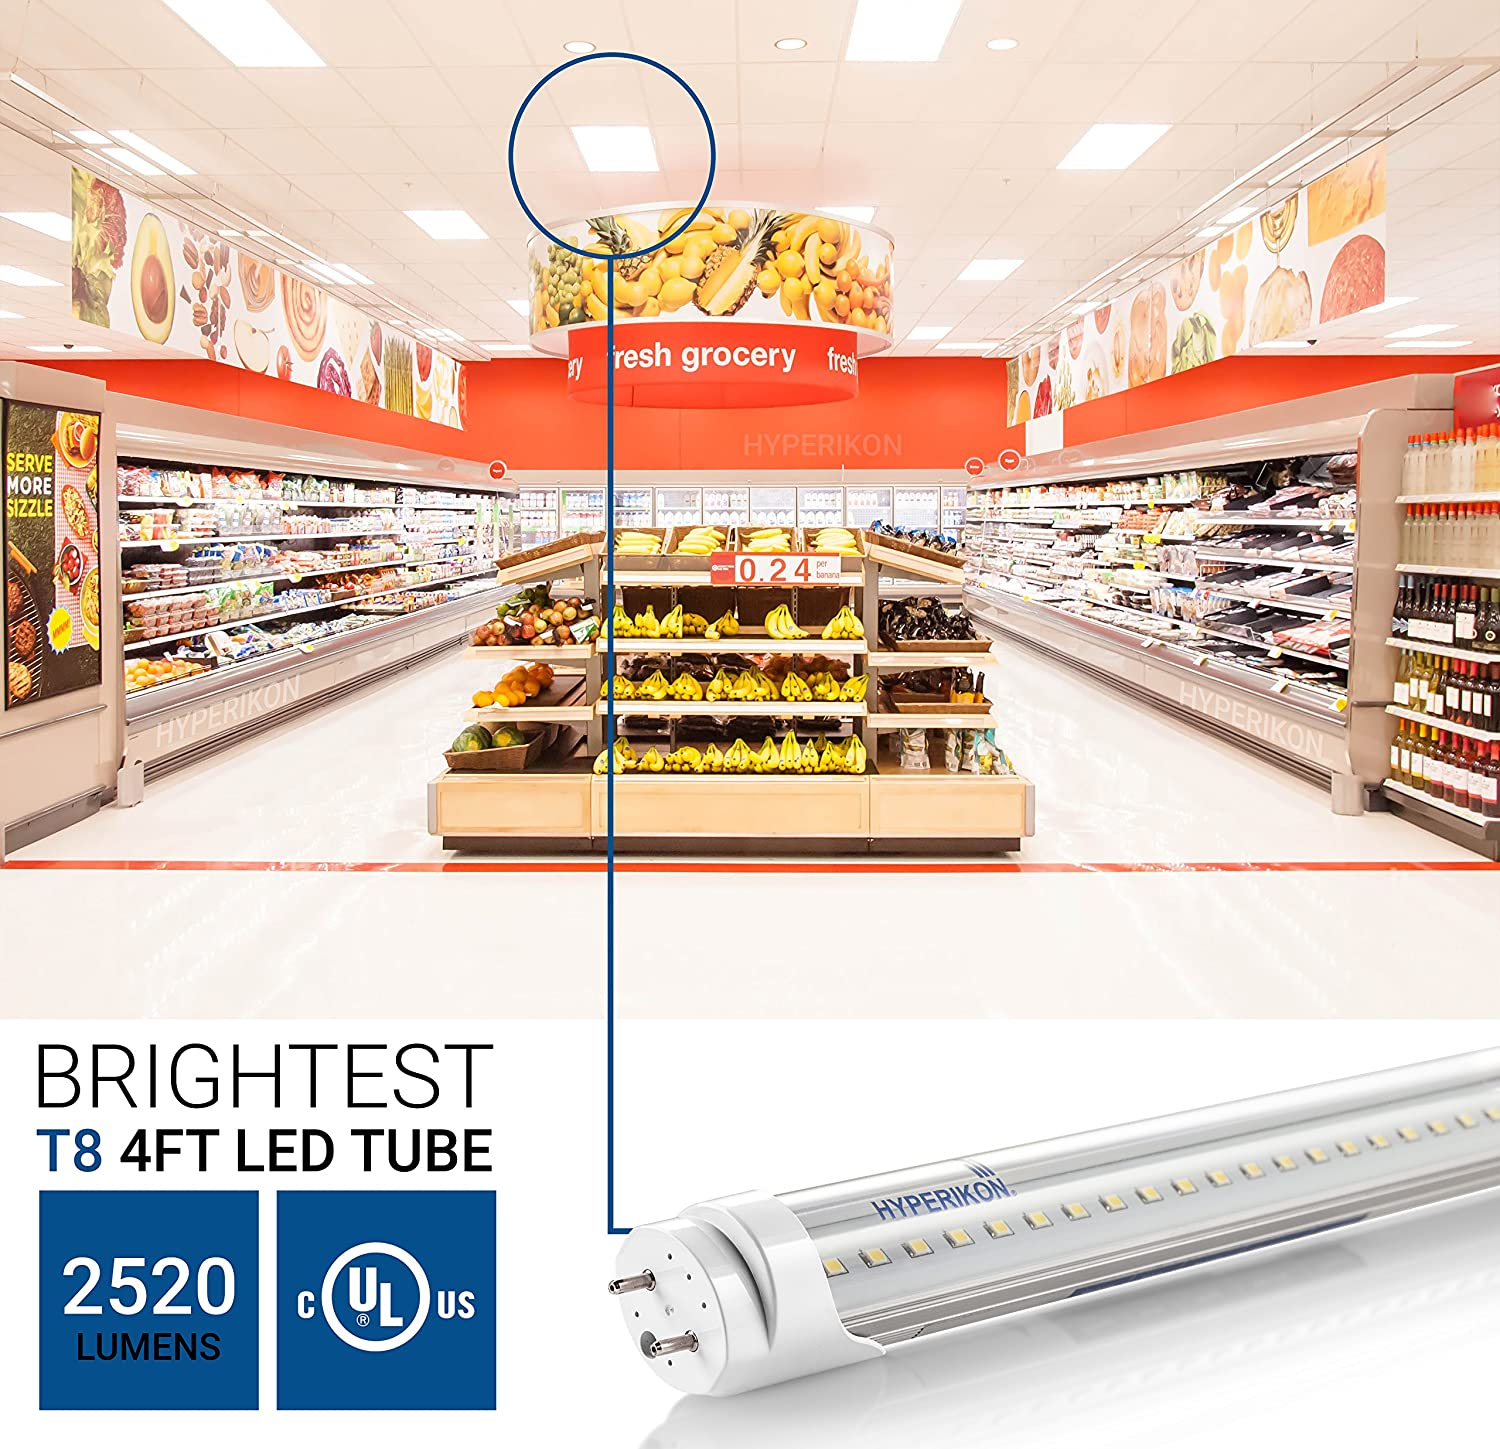 91ZdQnJfRTL._SL1500_ hyperikon t8 t10 t12, 4ft led light tube, dual end powered, works hyperikon wiring diagram at mr168.co